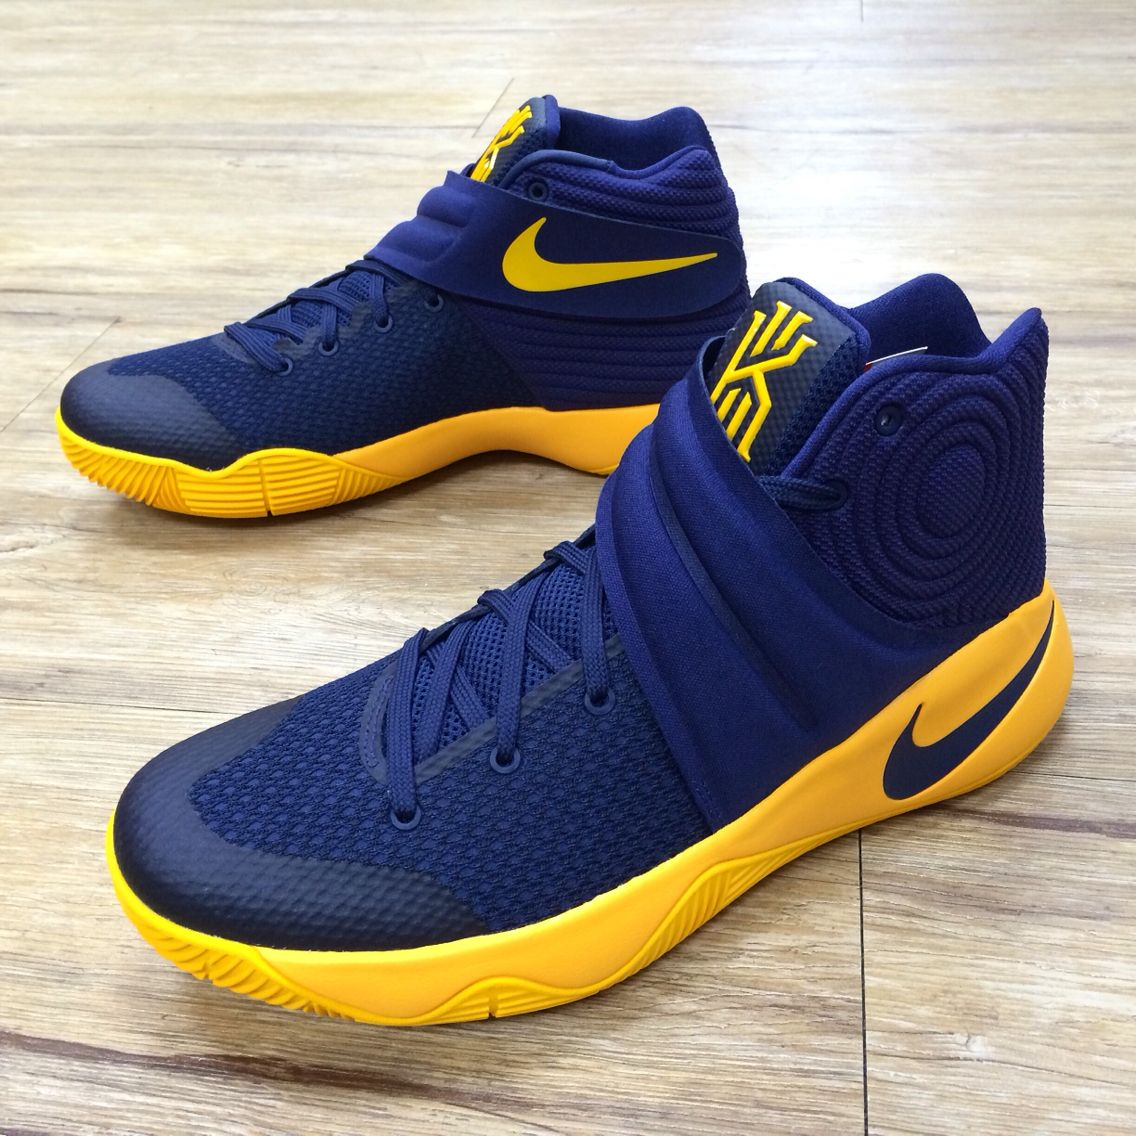 wholesale dealer ae5ad b5324 Nike Kyrie 2 EP II Irving Cavs Playoffs PE Navy Gold Mens Basketball  820537-447